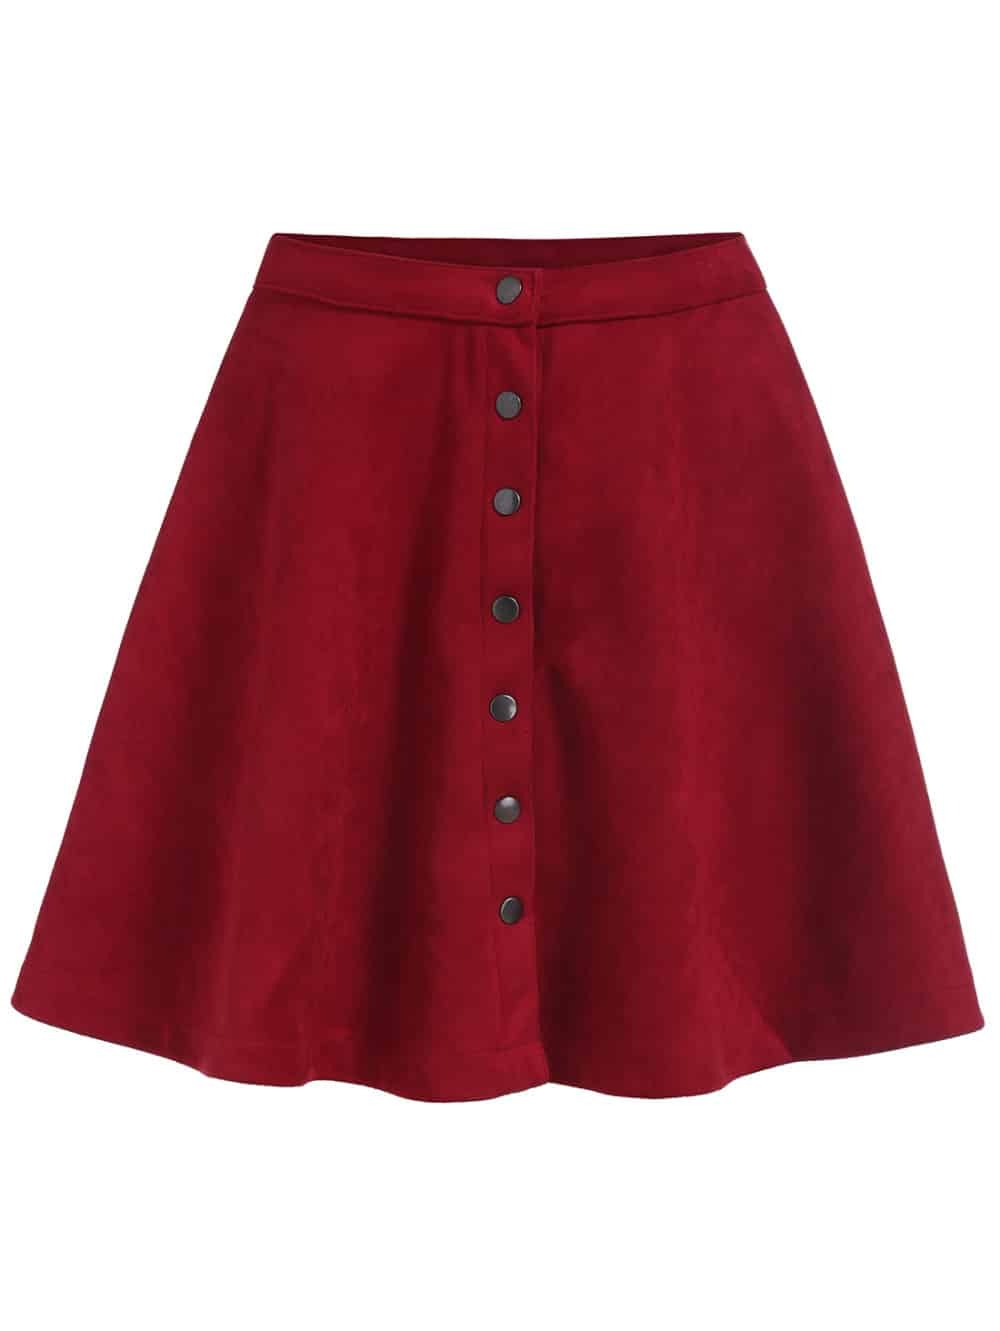 Shop for girls red skirts online at Target. Free shipping on purchases over $35 and save 5% every day with your Target REDcard.